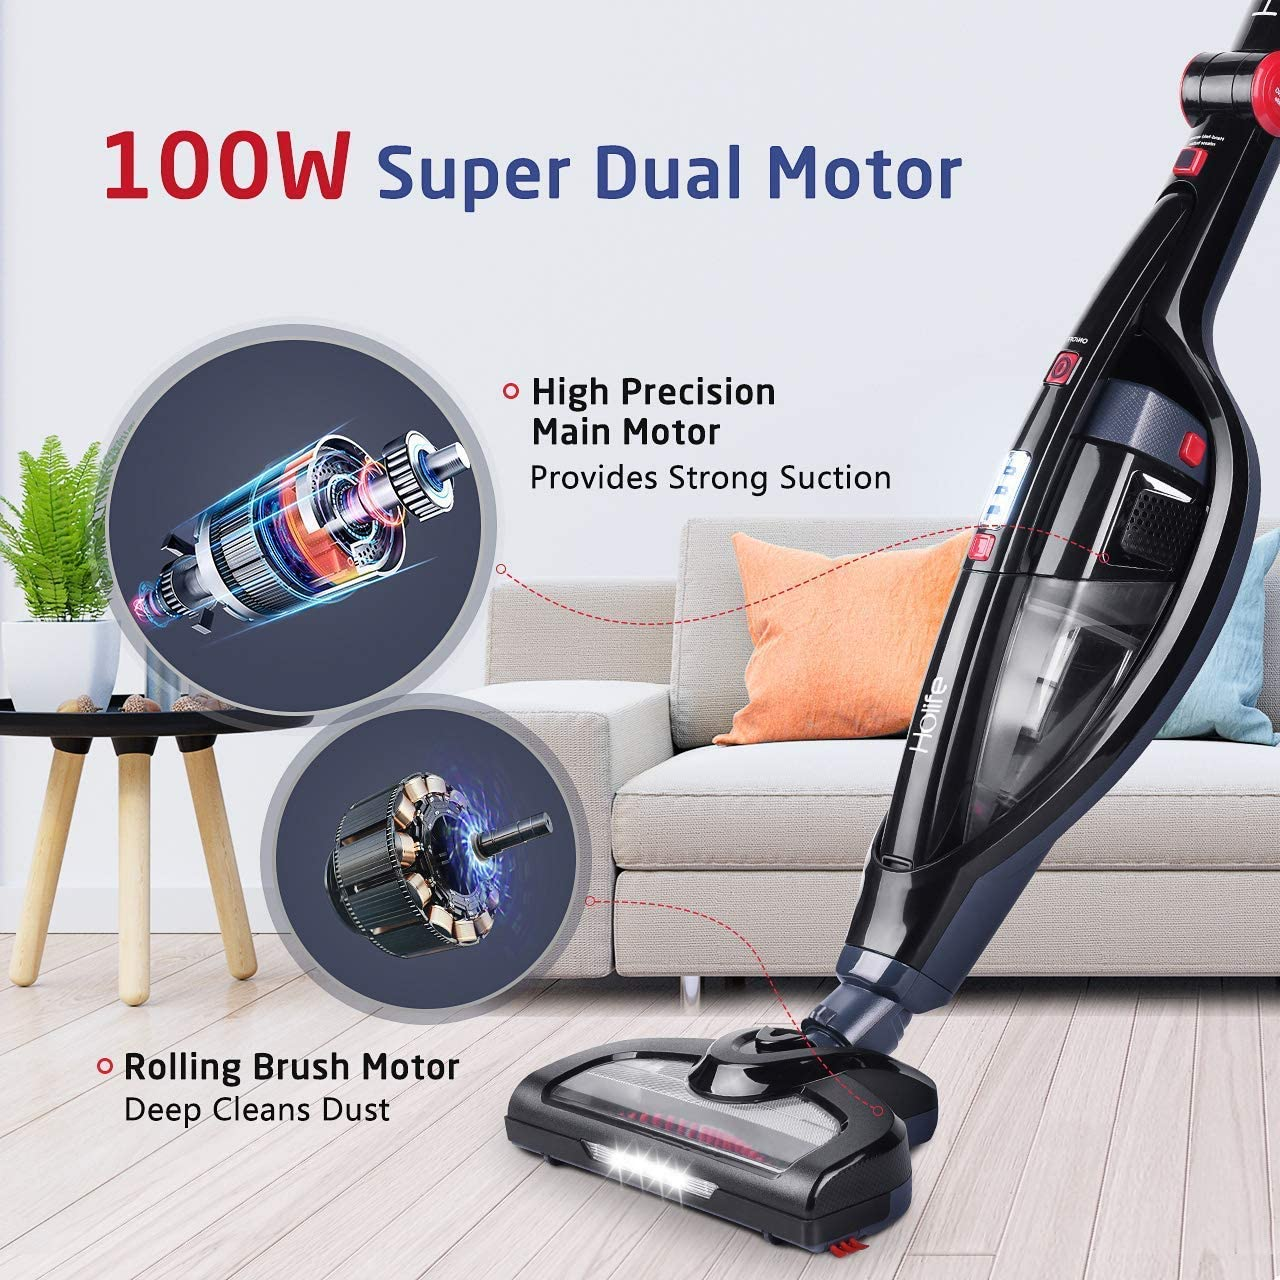 Holife Upright Vacuum, 2 in 1 Cordless Handheld Stick Vac Rechargeable Vacuum Cleaner, Hand held Vac with High Power & Long Lasting 18.5V Li ion